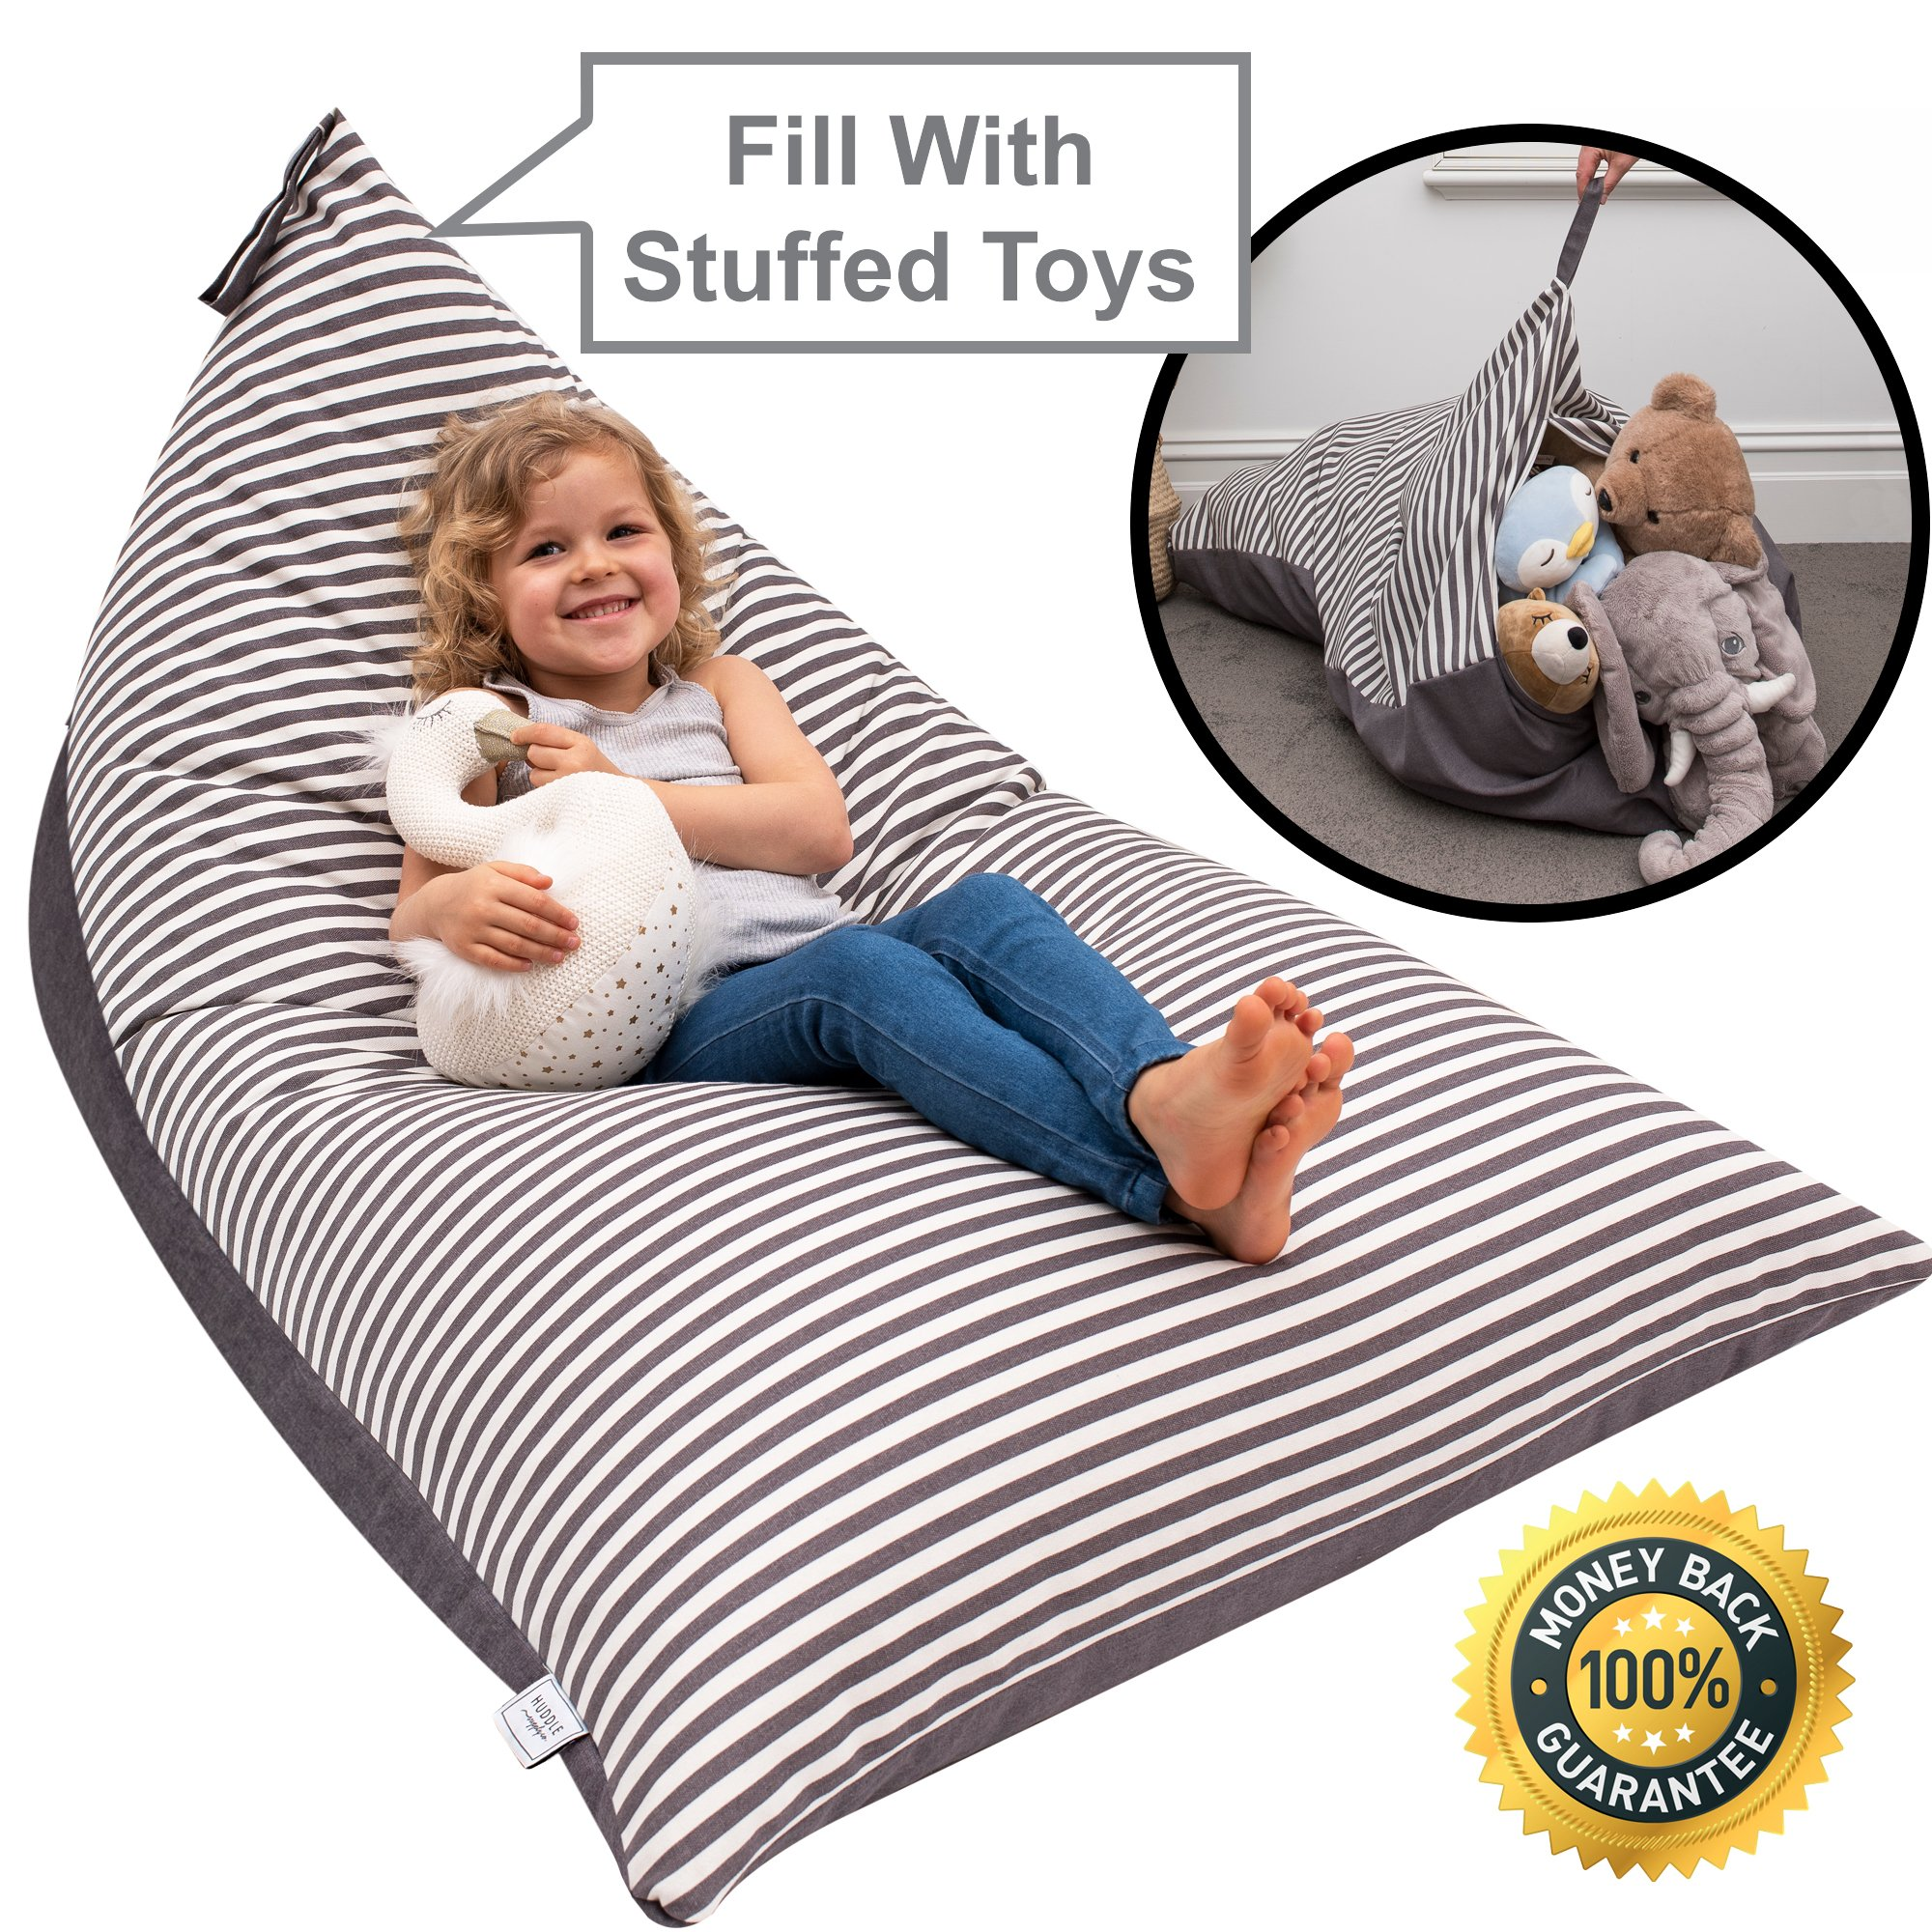 Stuffed Animal Bean Bag Storage ''Stuffie Seat'' - Designer Bean Bag - Stuffed Animal Storage Bean Bag Chair for Kids, Teens and Adults   Extra Large   100% Cotton Premium Canvas